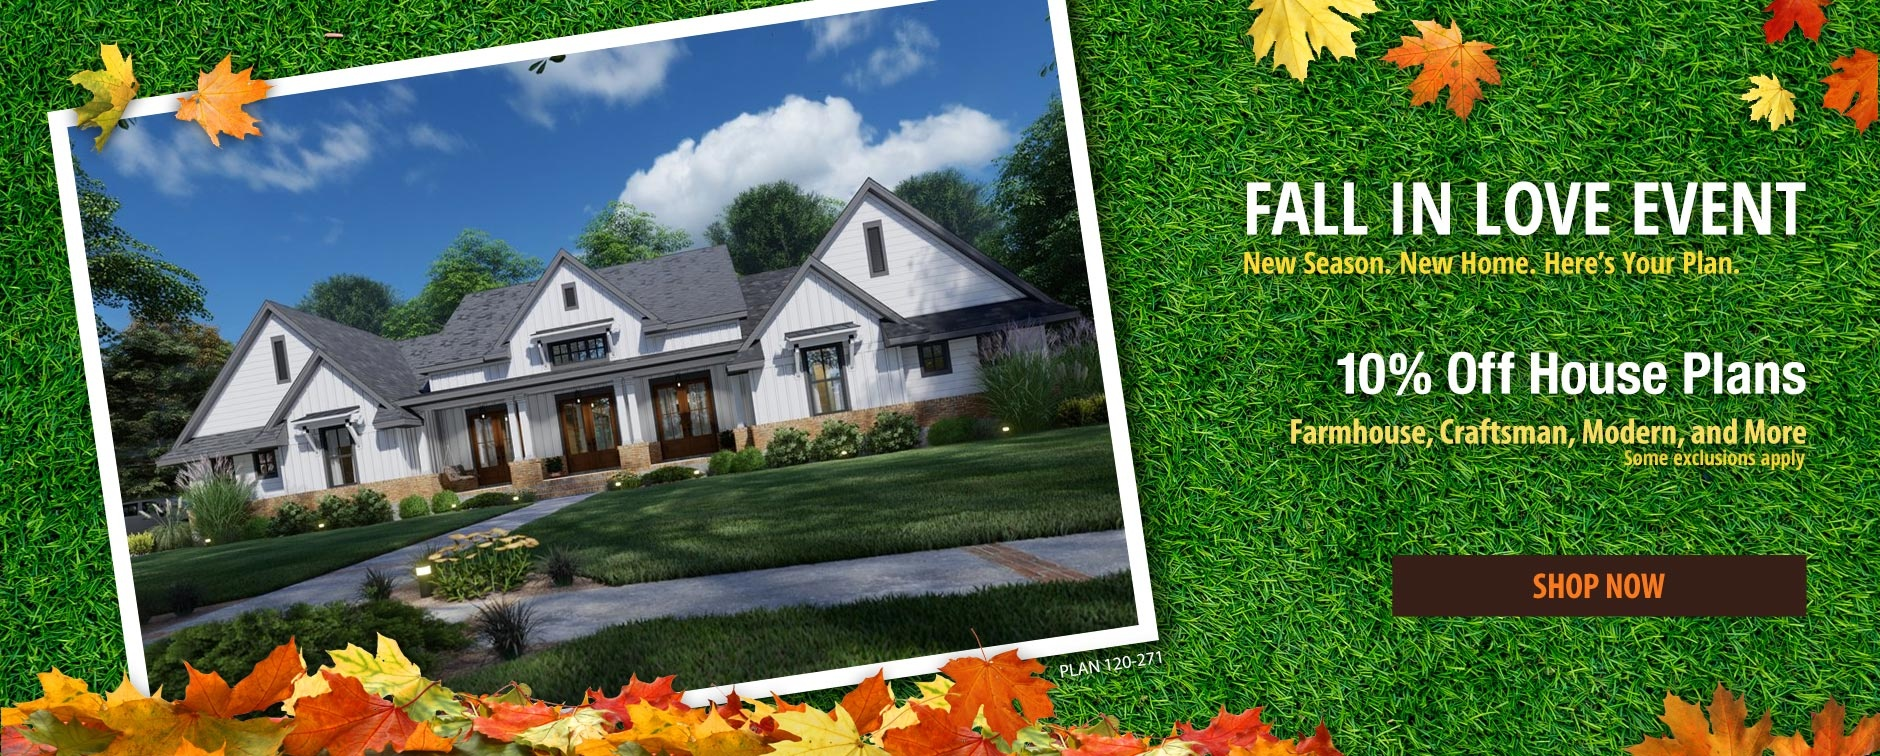 House Plan Sale On Now